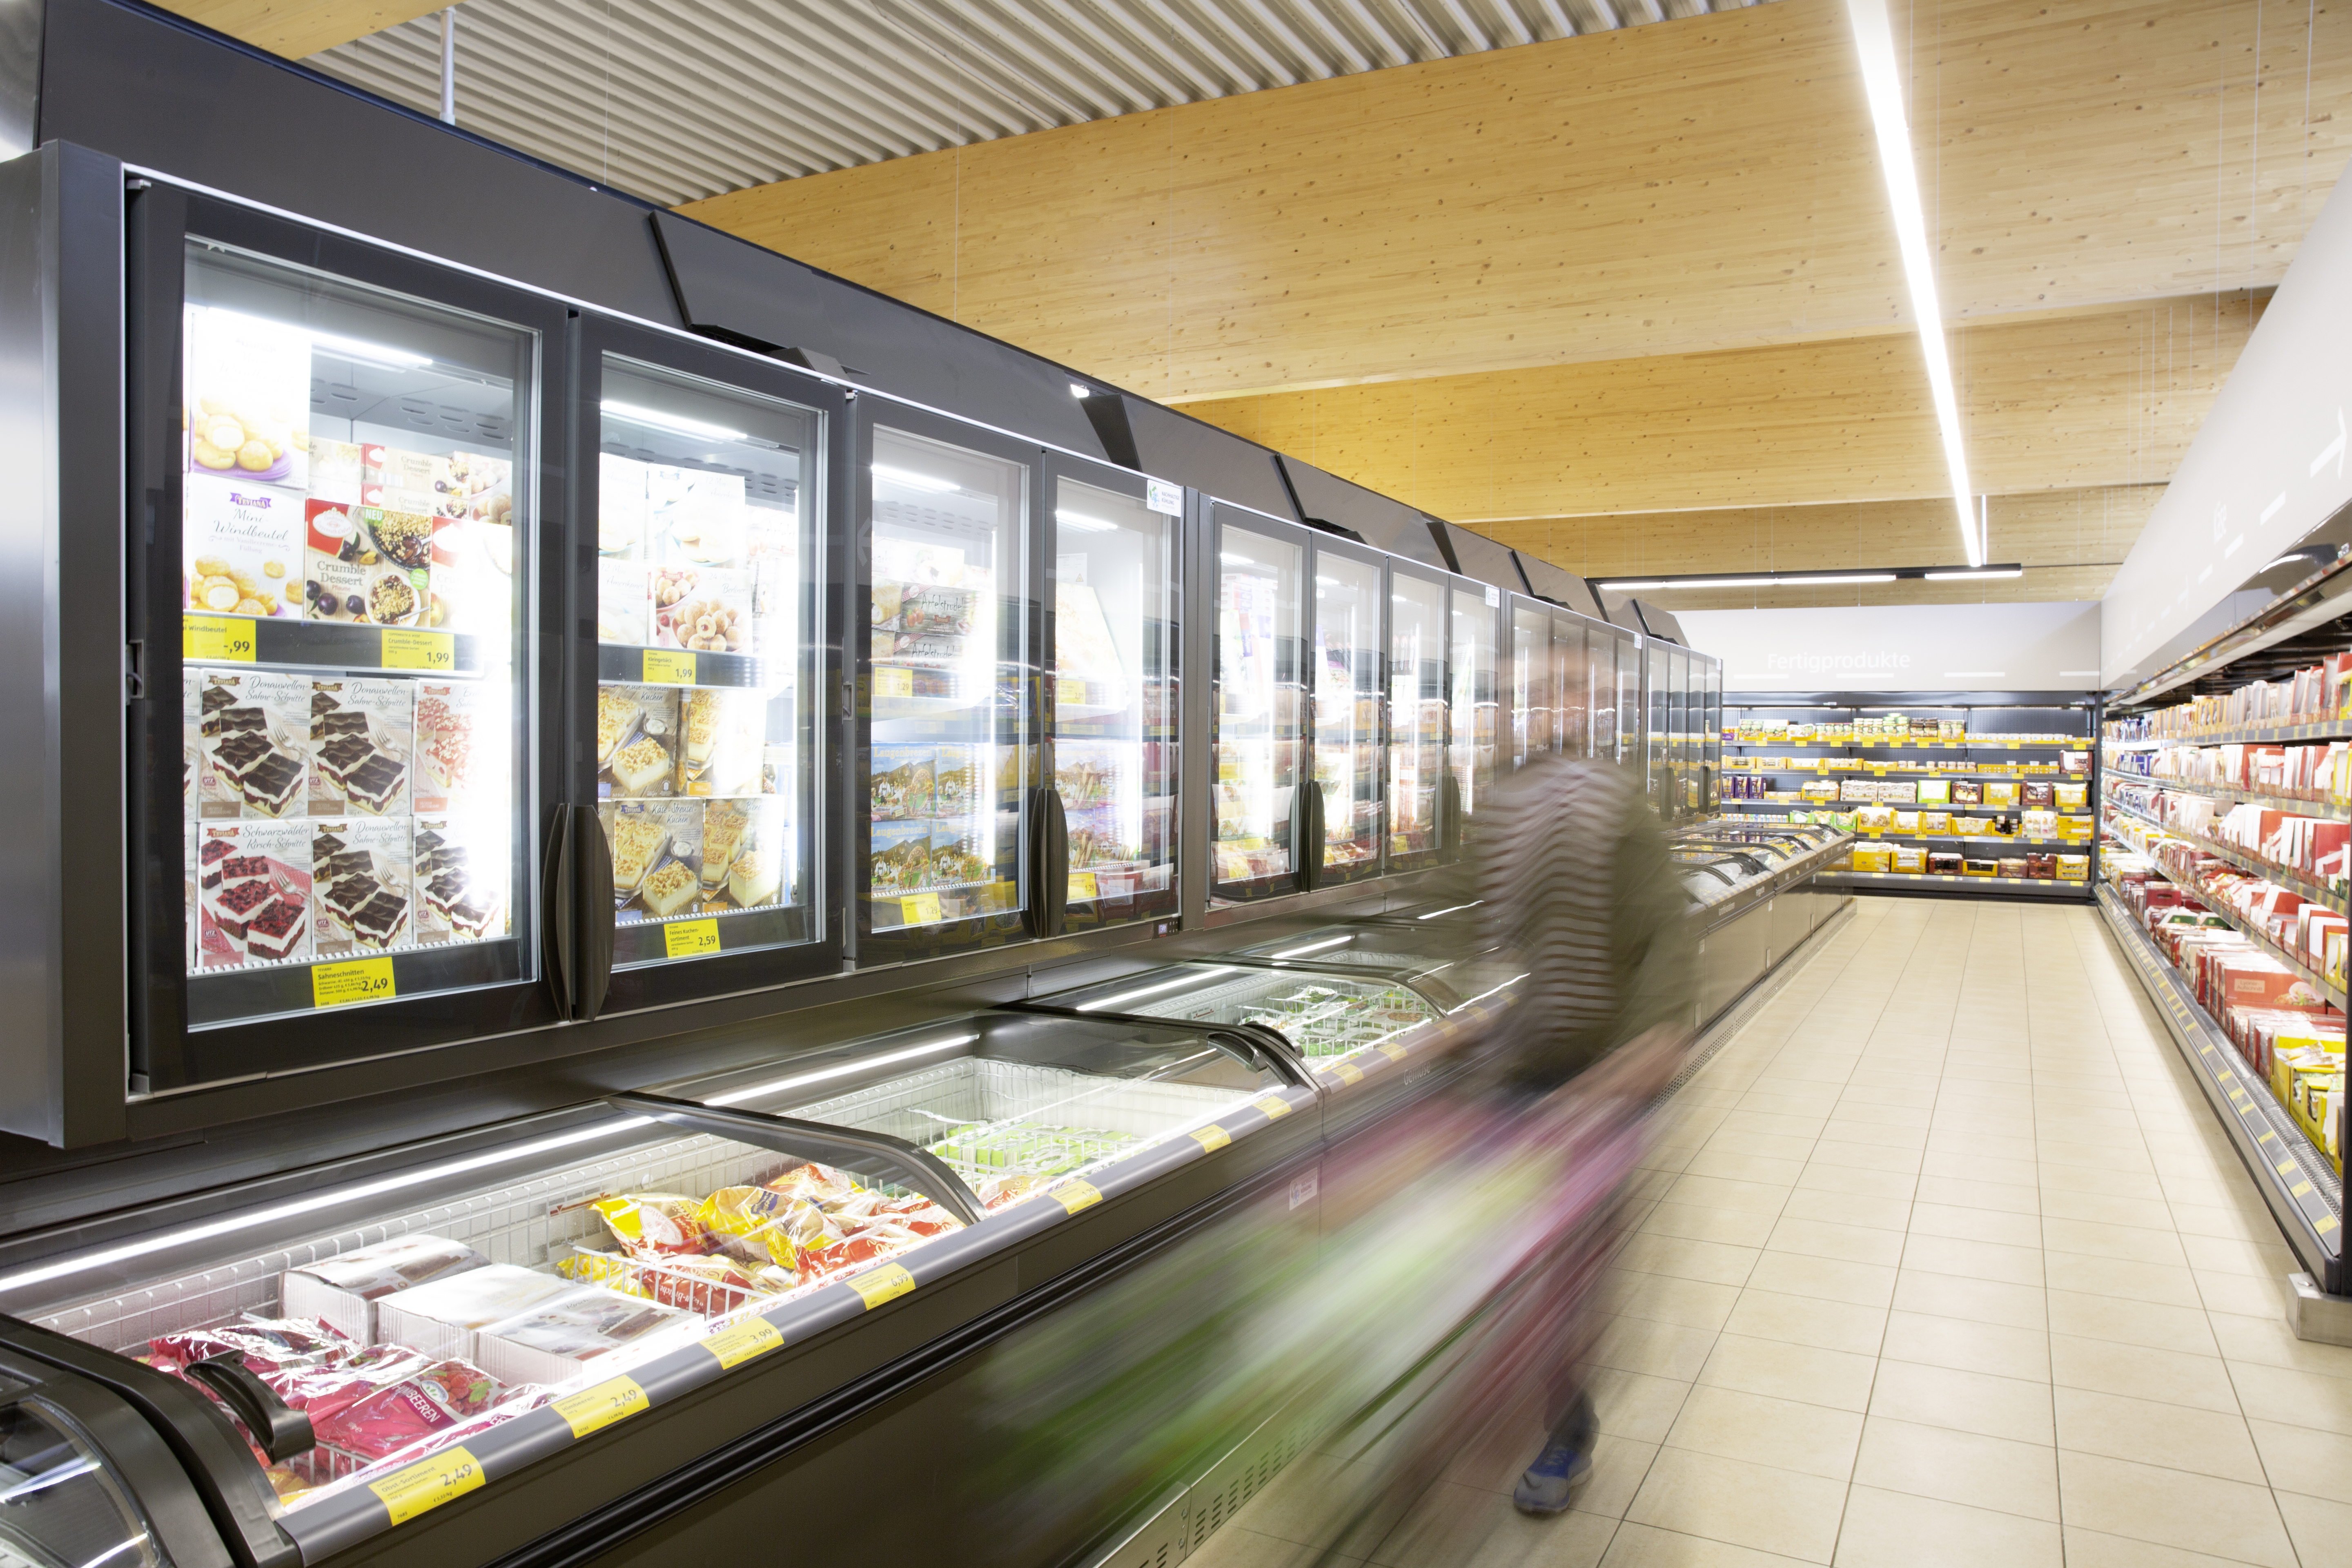 Refrigeration aisle in ALDI store